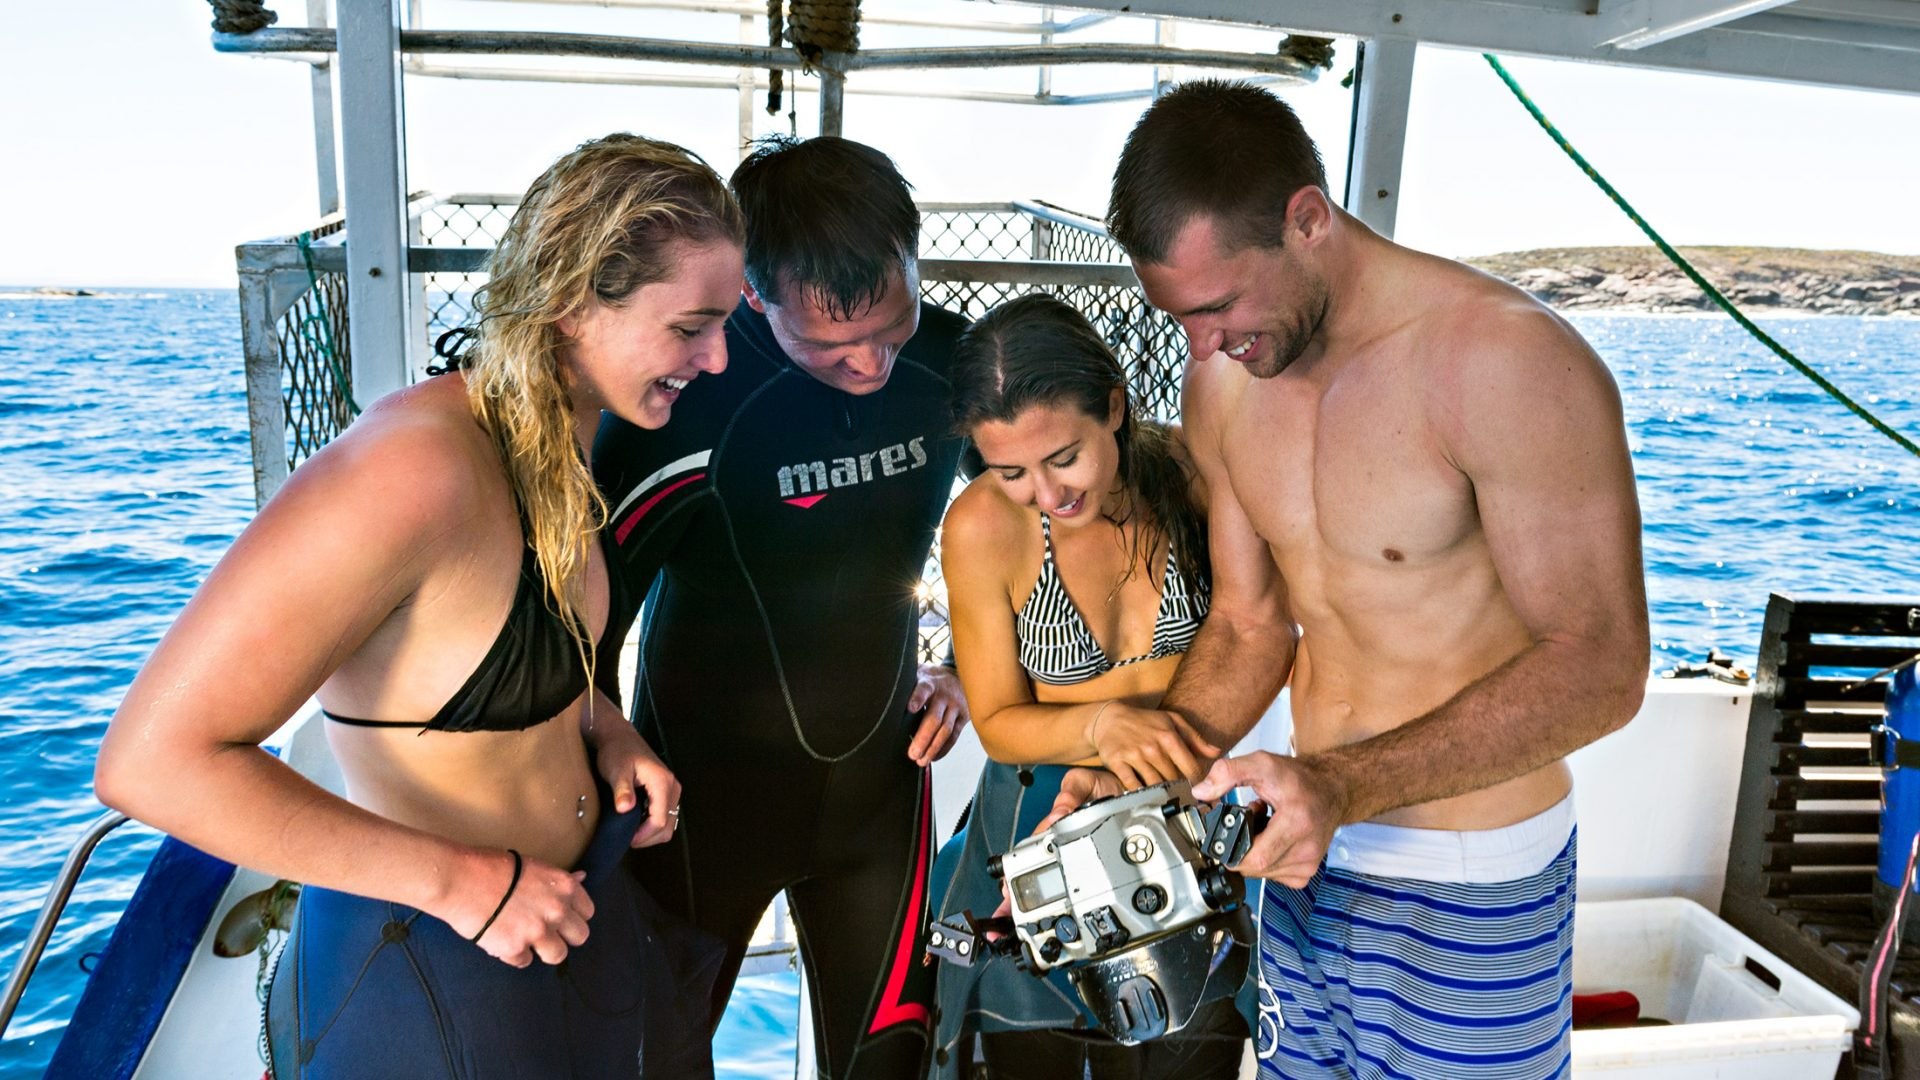 After ocean floor cage diving, guests look at some of the pictures they have taken.